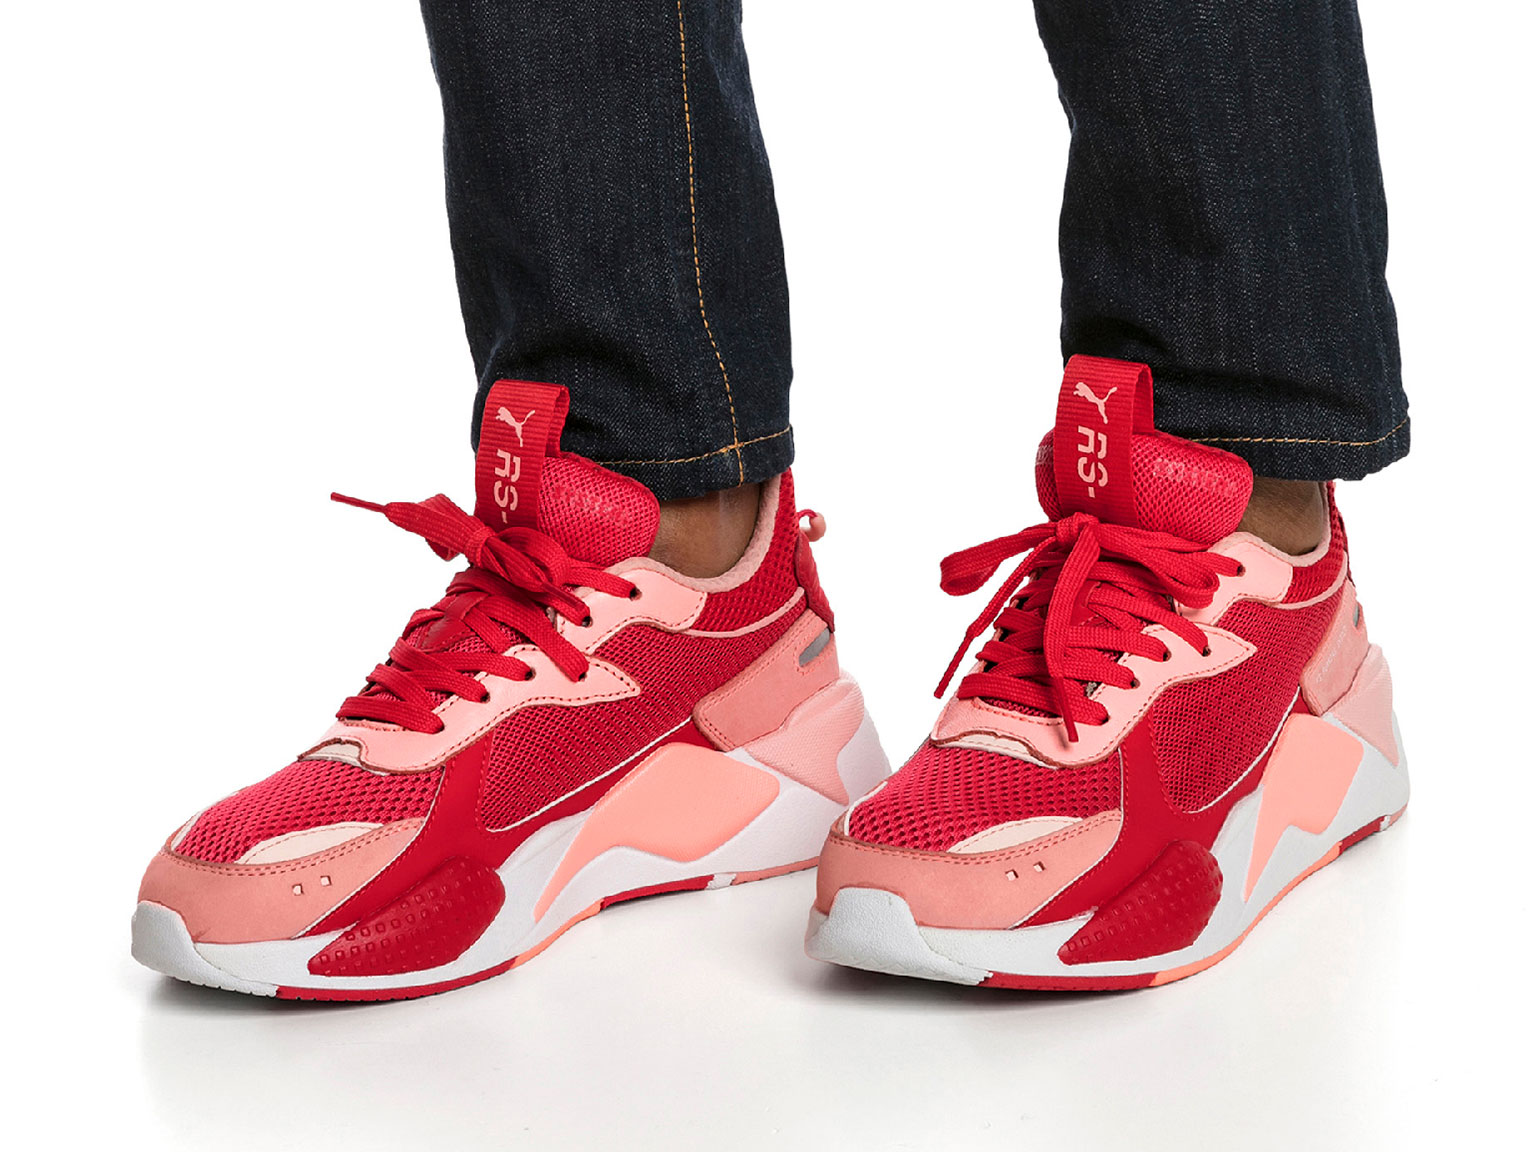 7af29022c4db puma launches rs-x toys. Celebrates Reinvention of Toys In and Beyond  Sneaker Culture. Previous